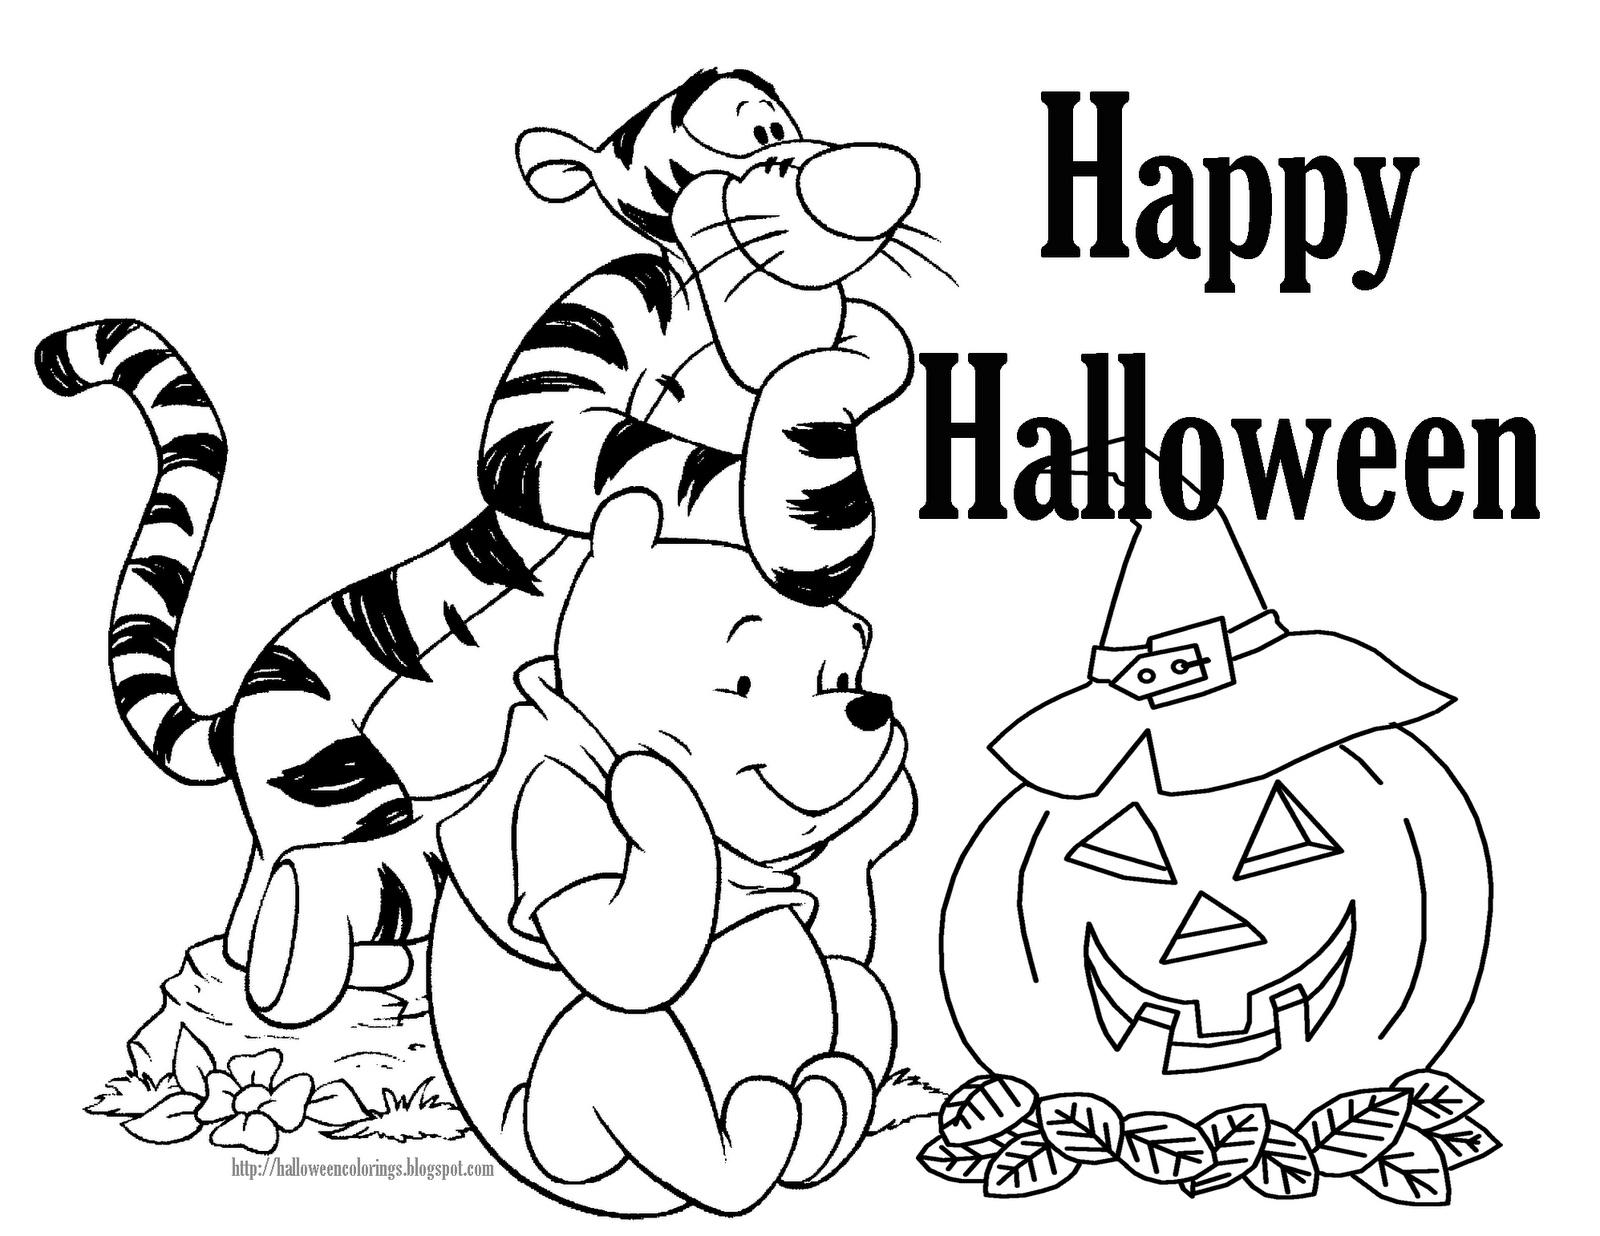 Coloring book pages halloween - Disney Halloween Coloring Book Pages Kids Coloring Pages